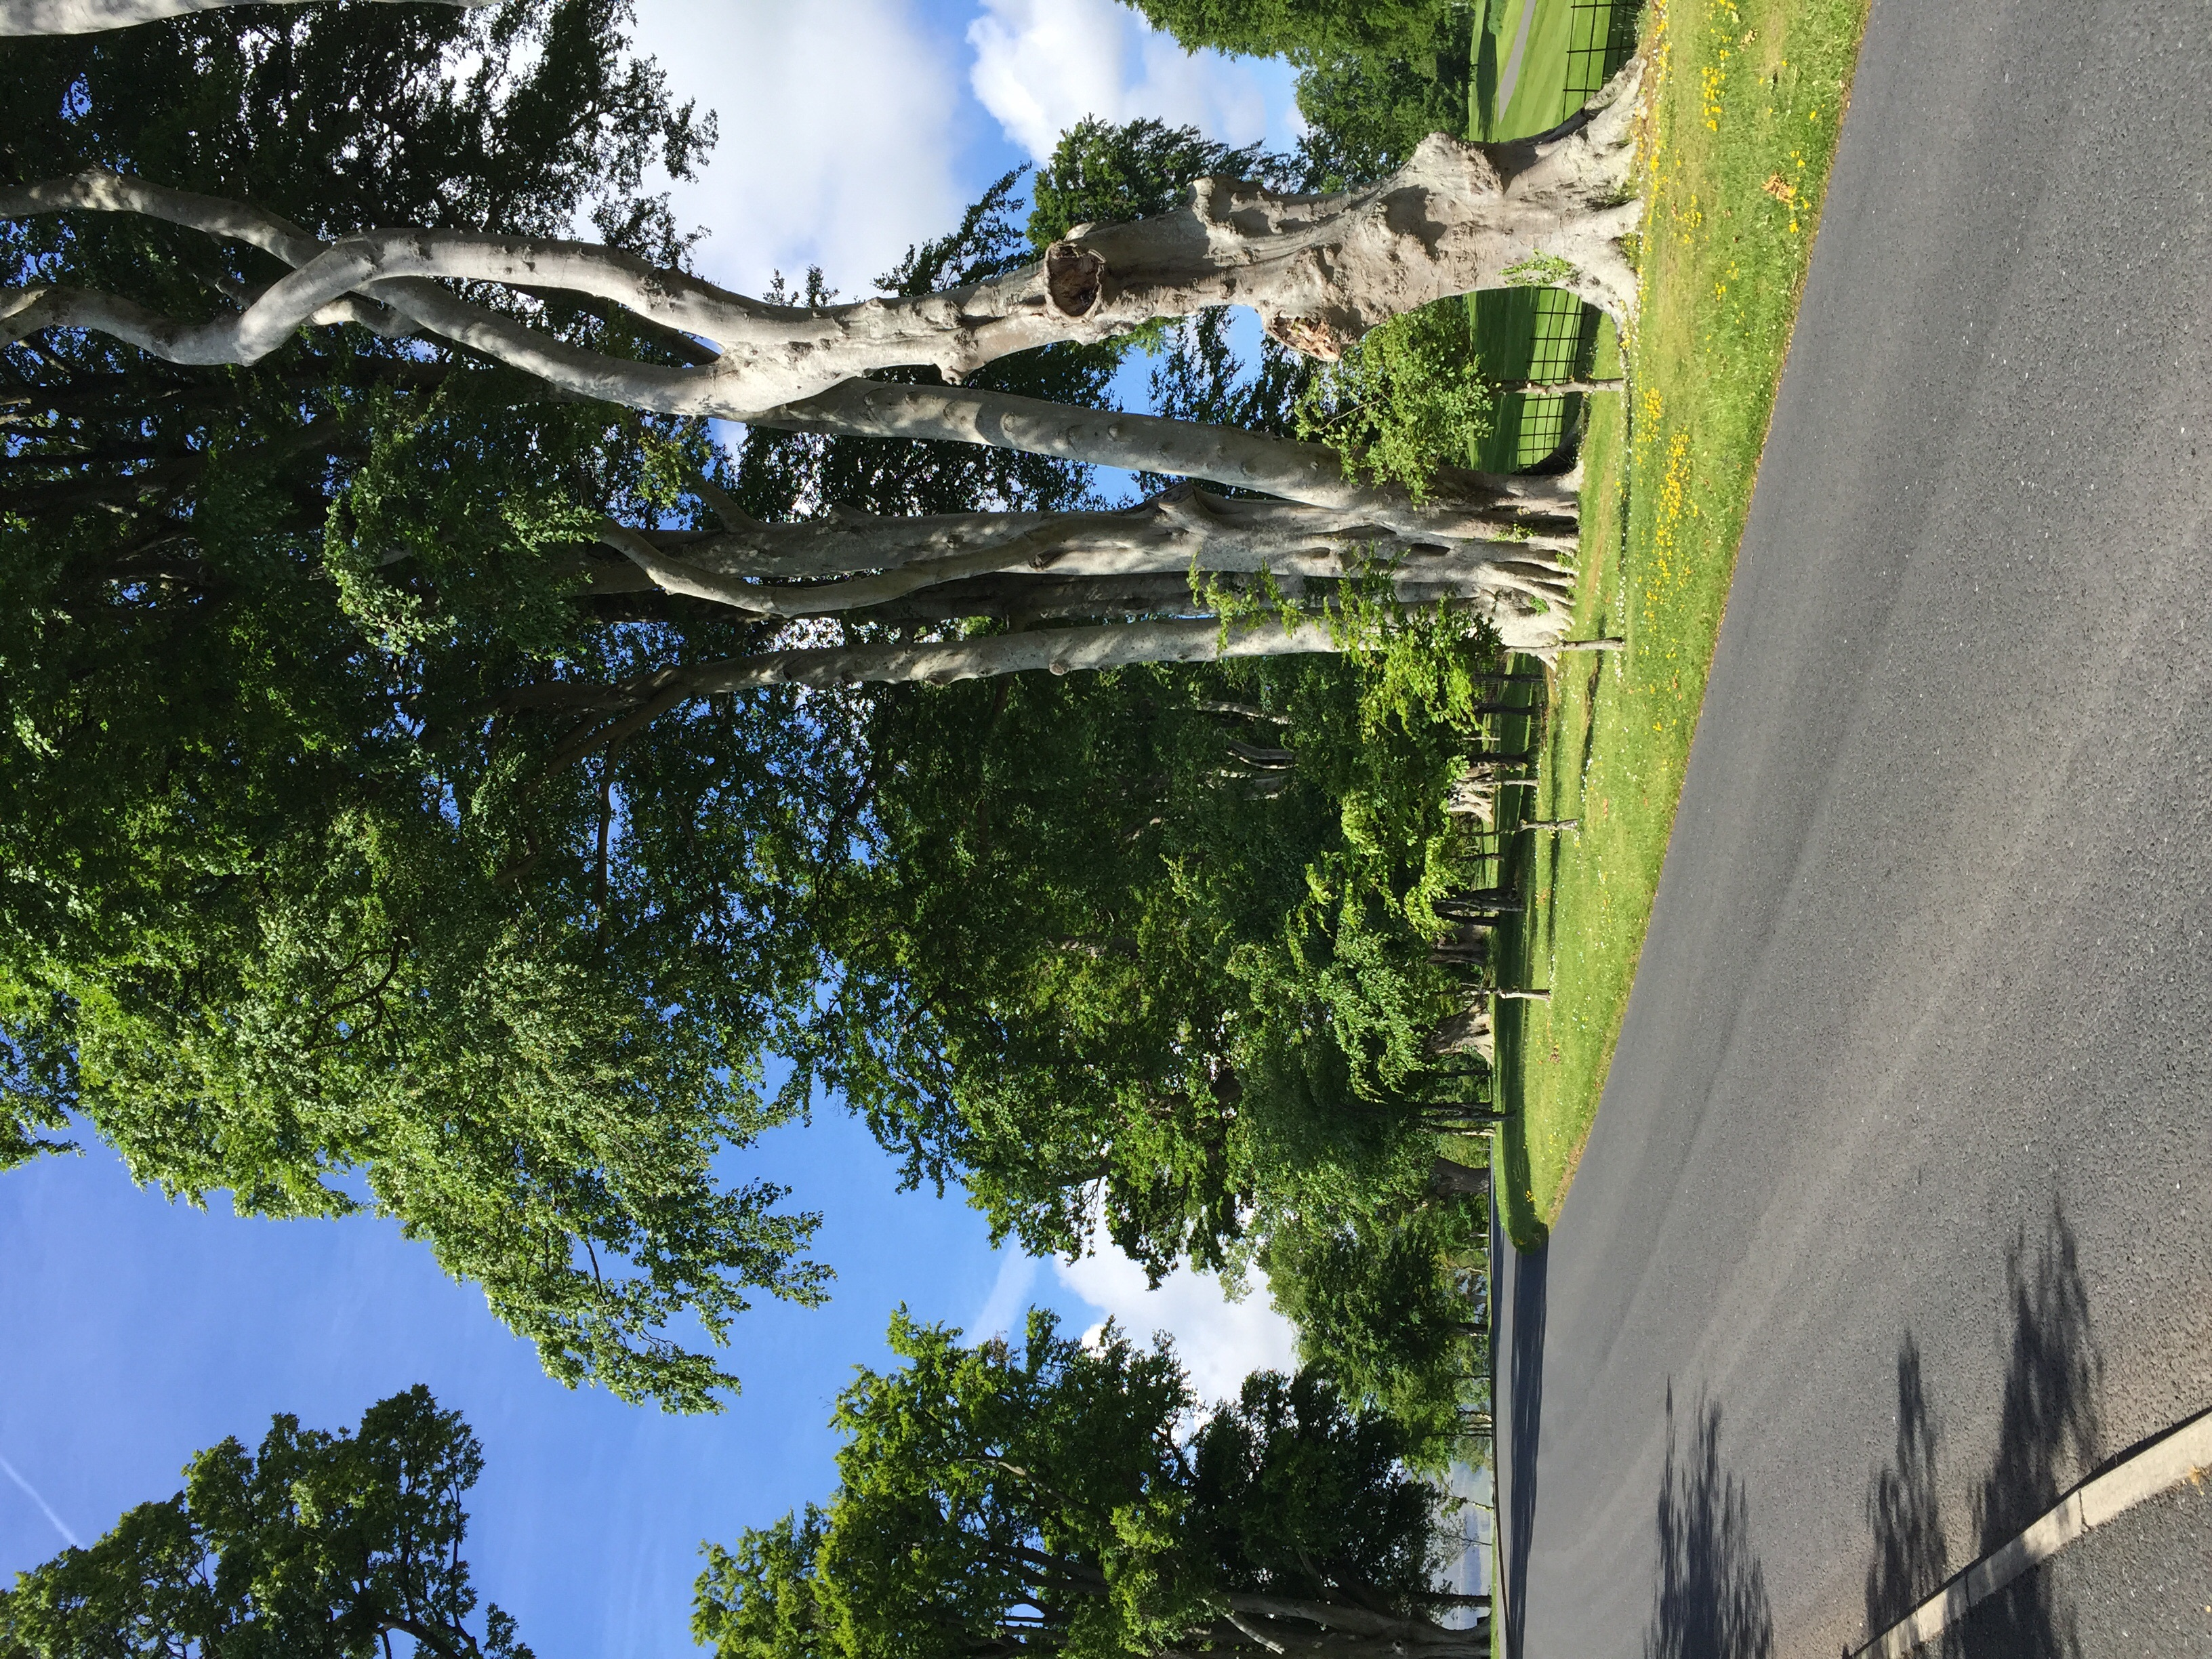 Old beech trees, golf course to the right.